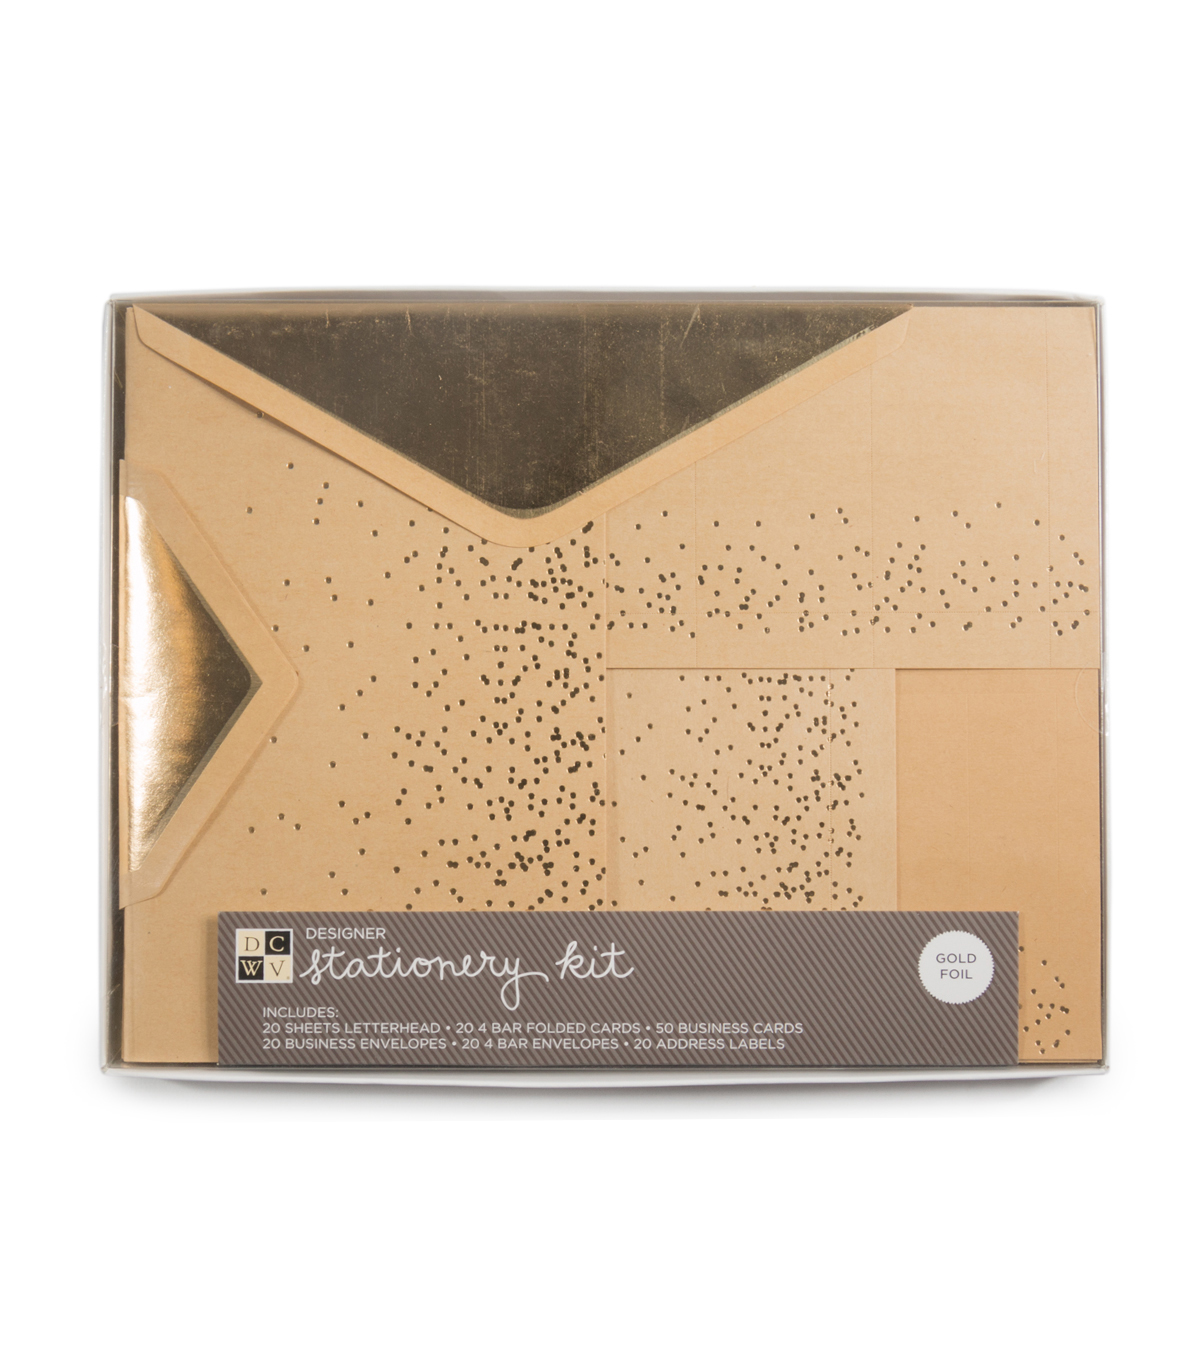 DCWV Stationery Kit: Gold dots